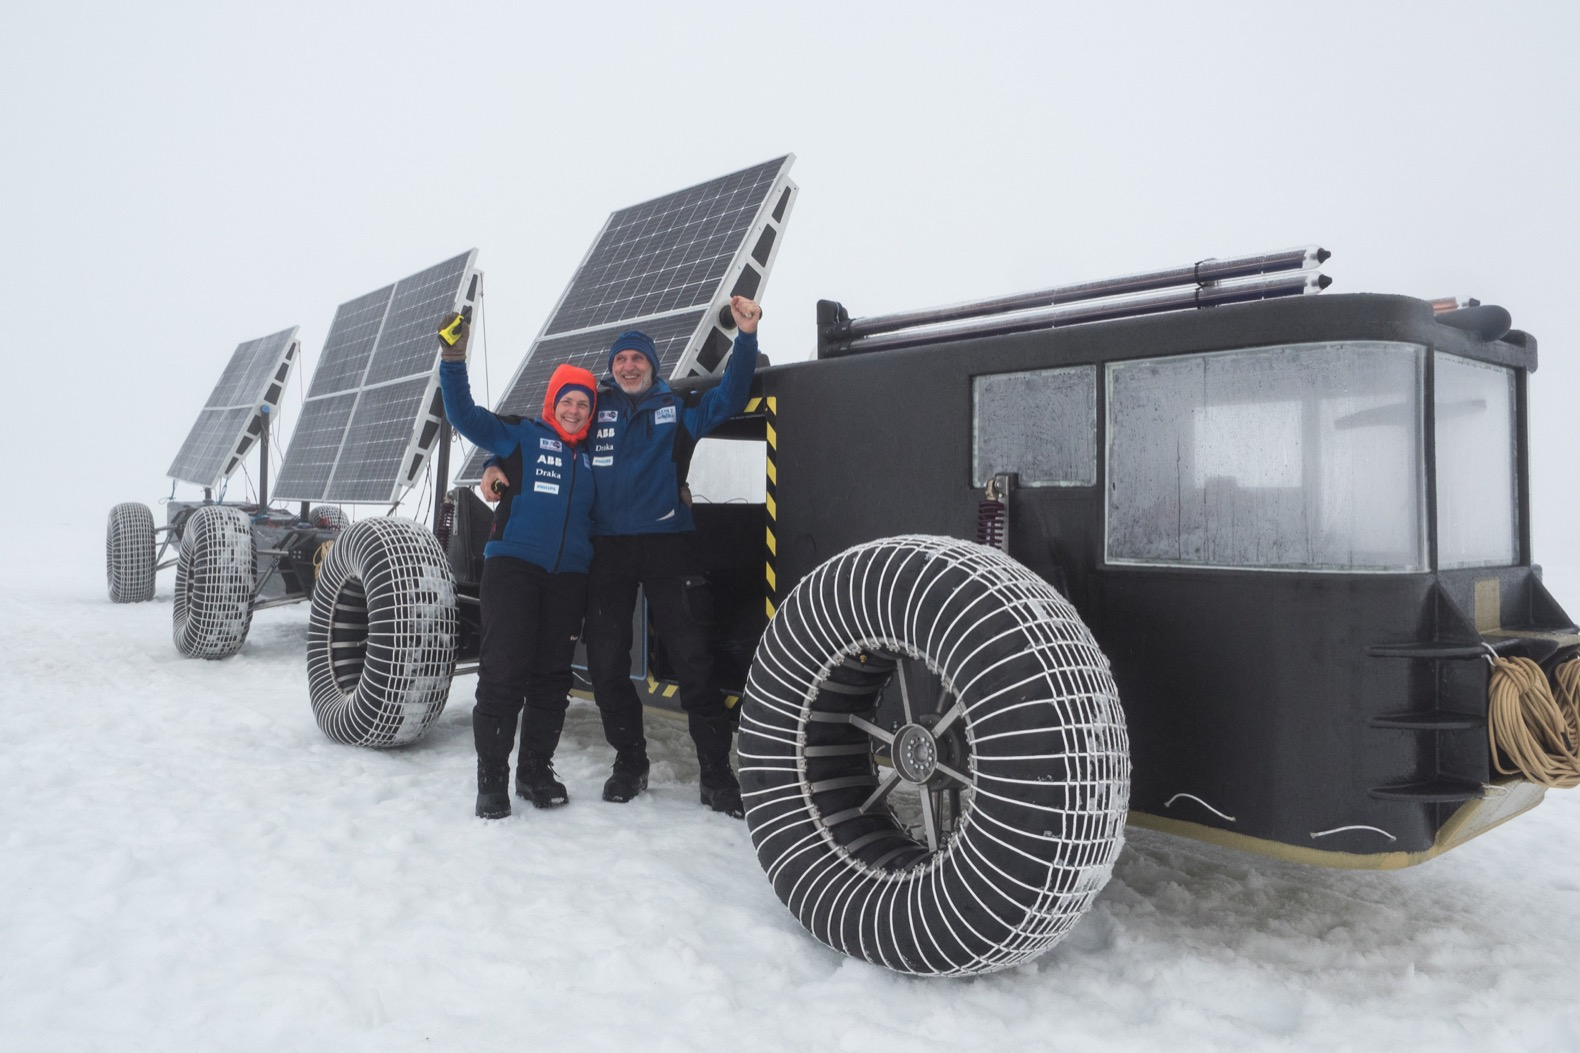 Dutch couple to drive a solar-powered, 3D-printed vehicle to the South Pole